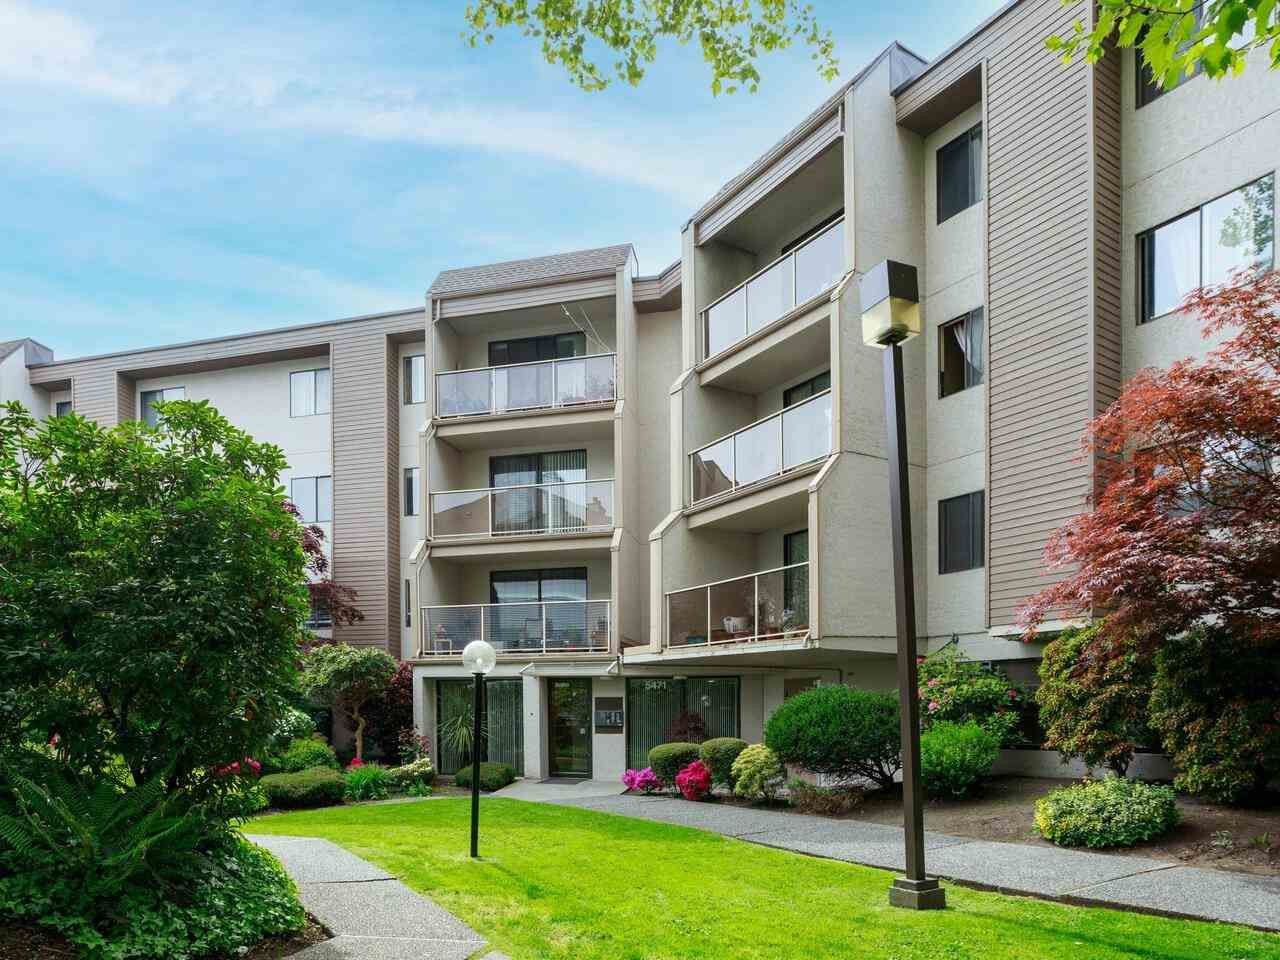 """Main Photo: 101 5471 ARCADIA Road in Richmond: Brighouse Condo for sale in """"STEEPLE CHASE"""" : MLS®# R2578660"""